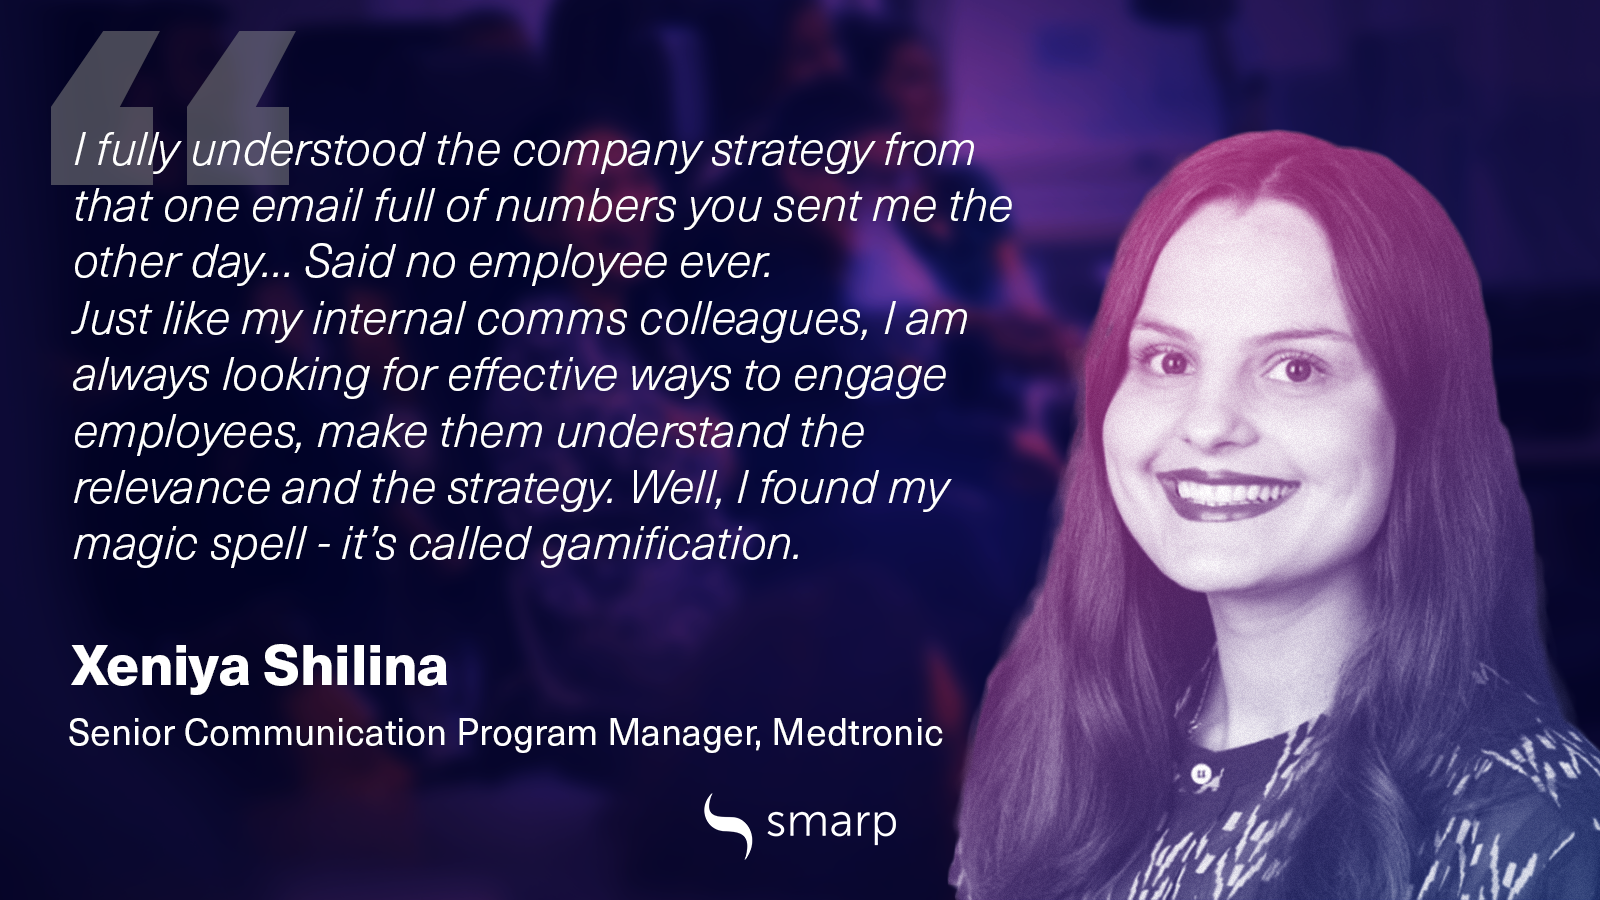 Xeniya Shilina on how to engage employees in the workplace with great internal comms